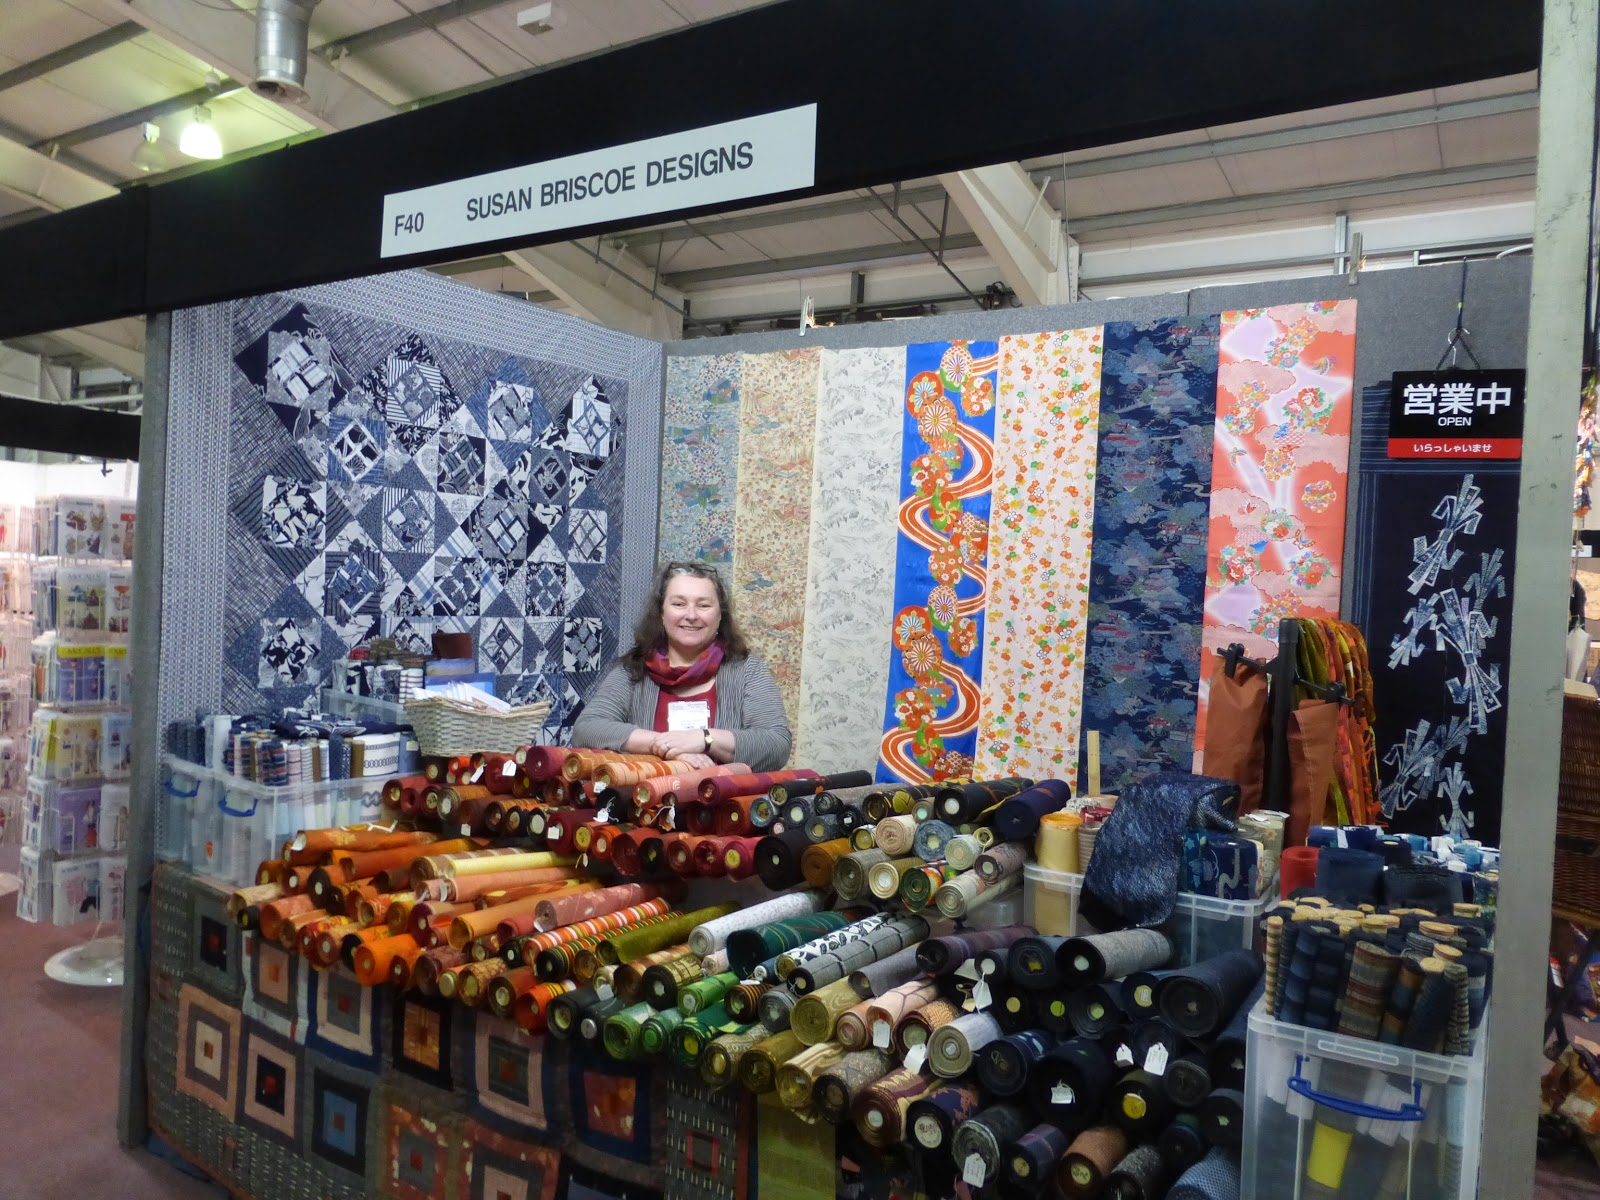 Knitting And Stitching Show 2017 October : sashiko and other stitching: Knitting and Stitching Show at Edinburgh